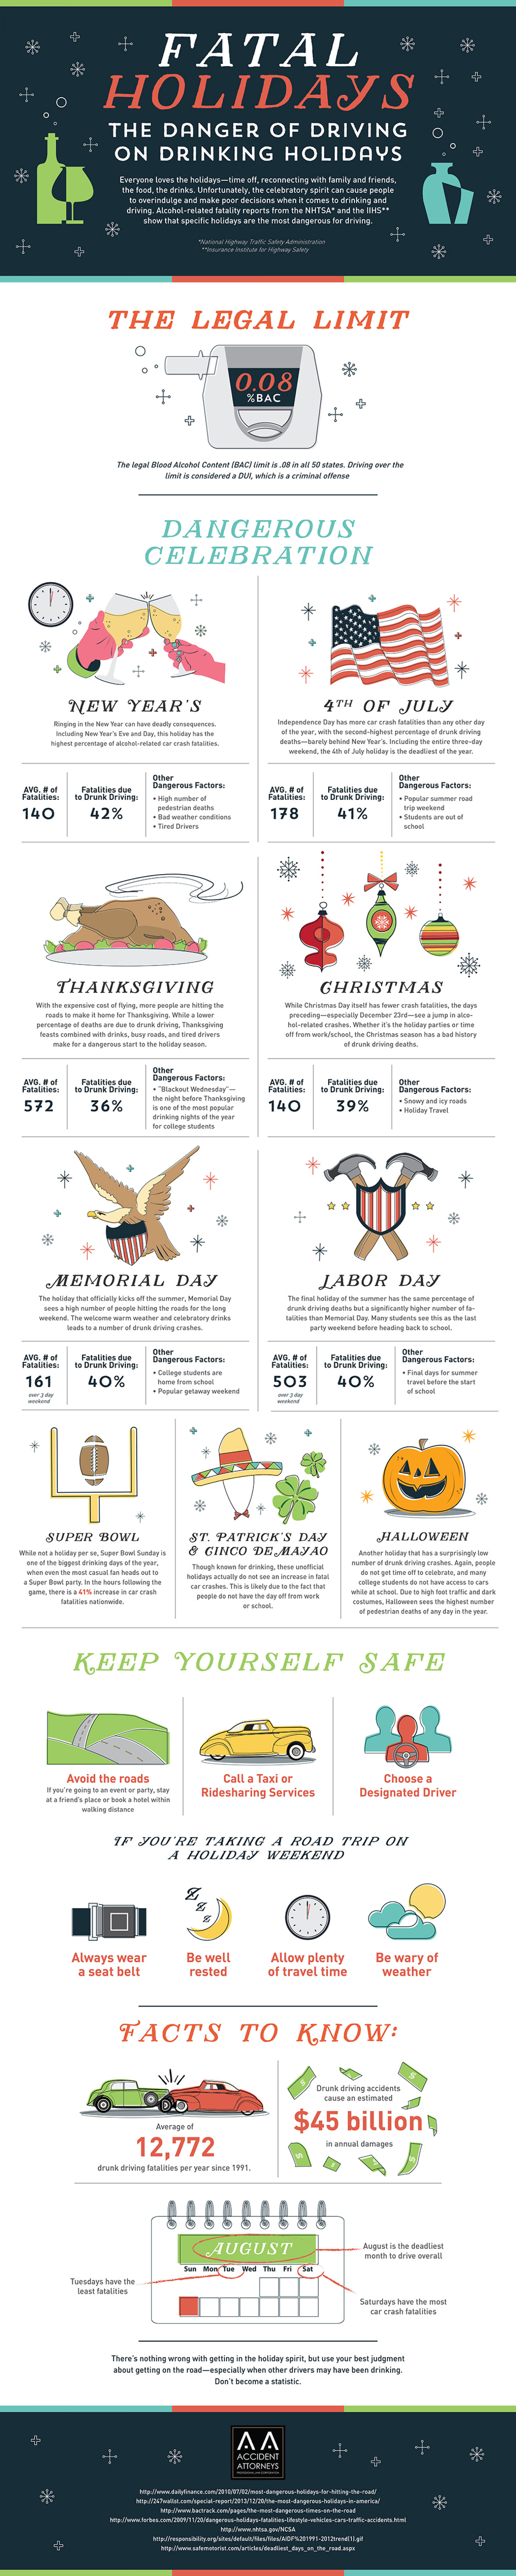 Fatal Holidays: The Danger of Driving on Drinking Holidays Infographic